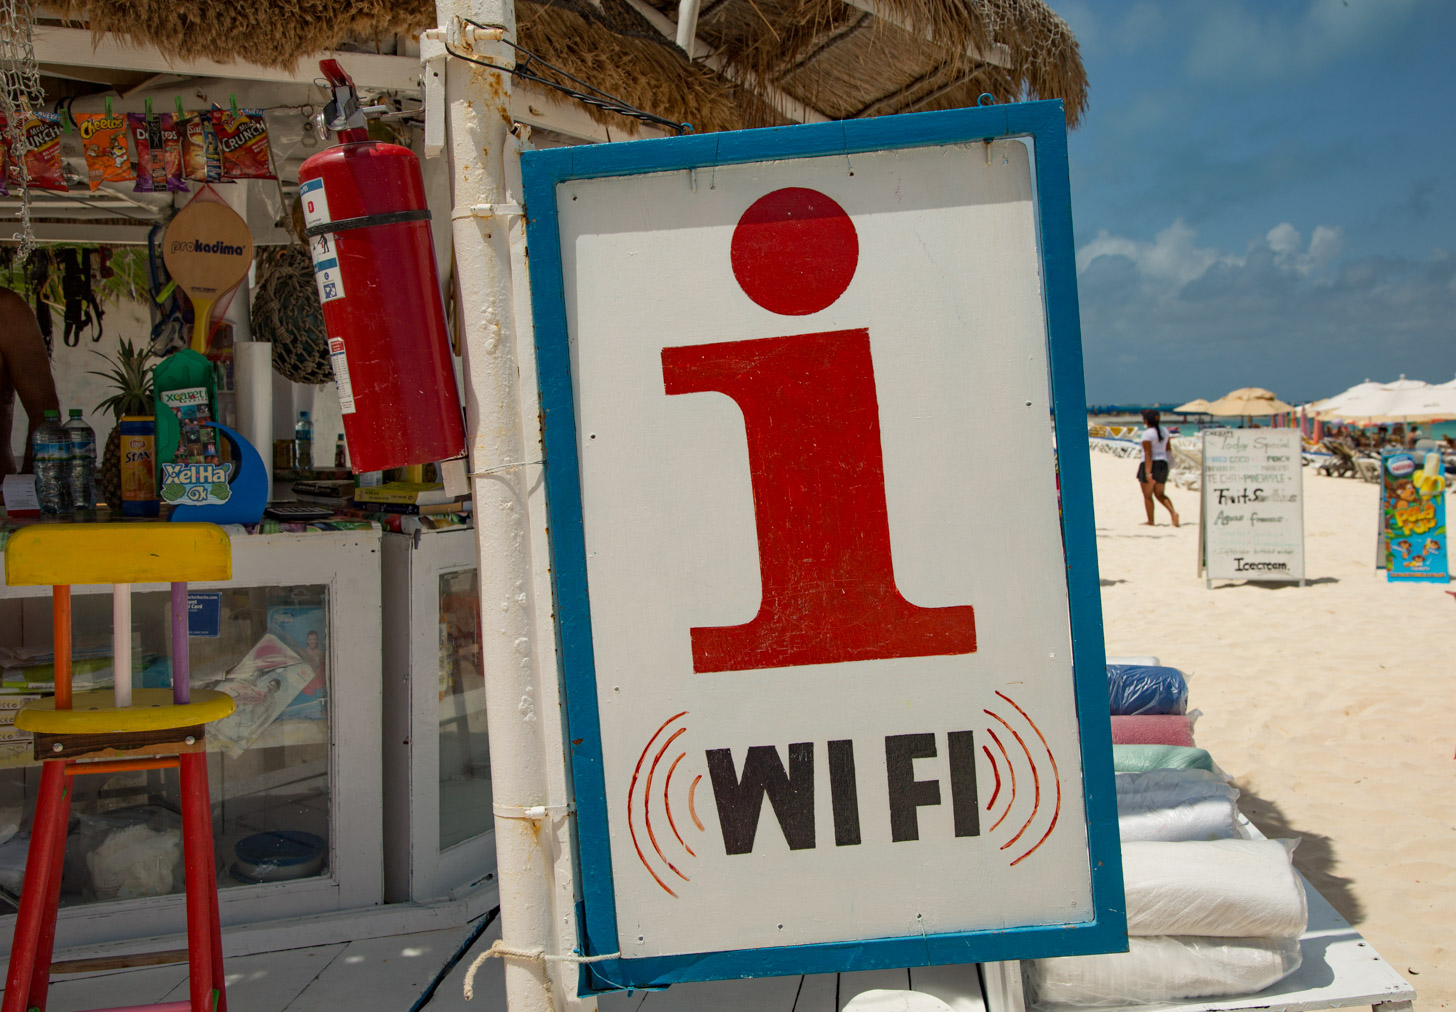 Internet via wifi